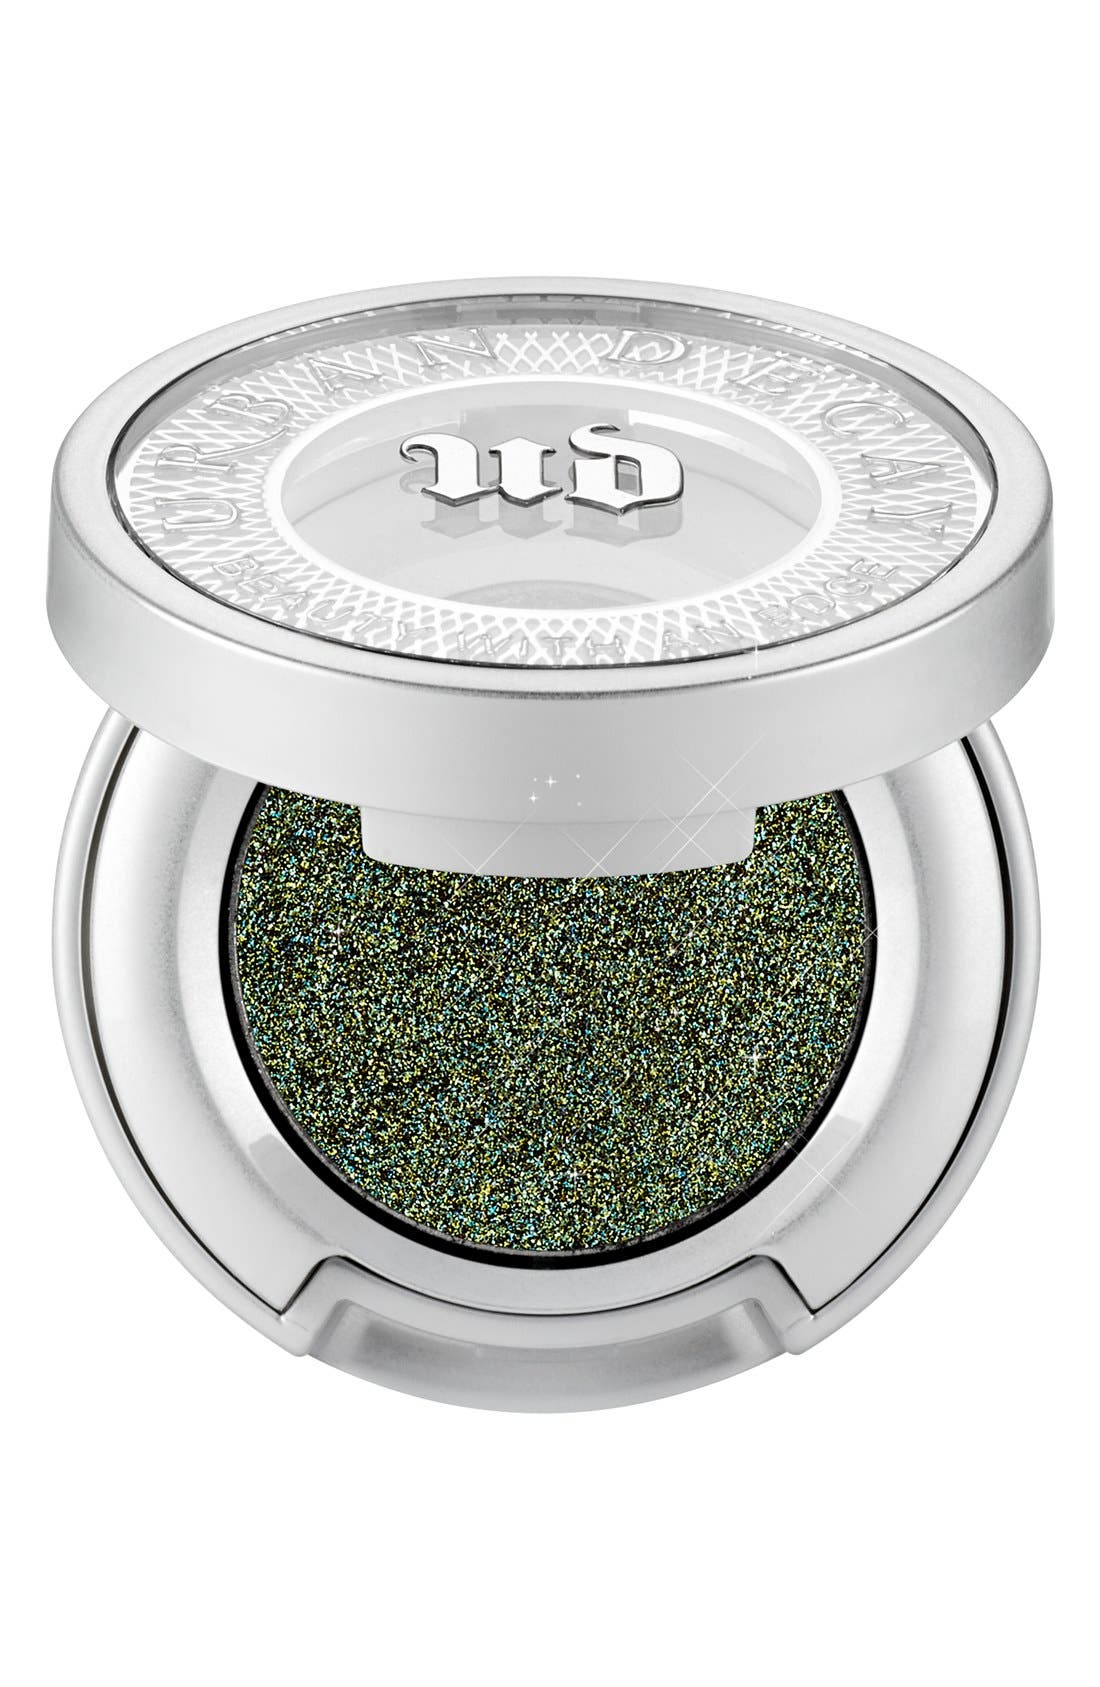 URBAN DECAY Moondust Eyeshadow Zodiac 0.05 Oz/ 1.5 G